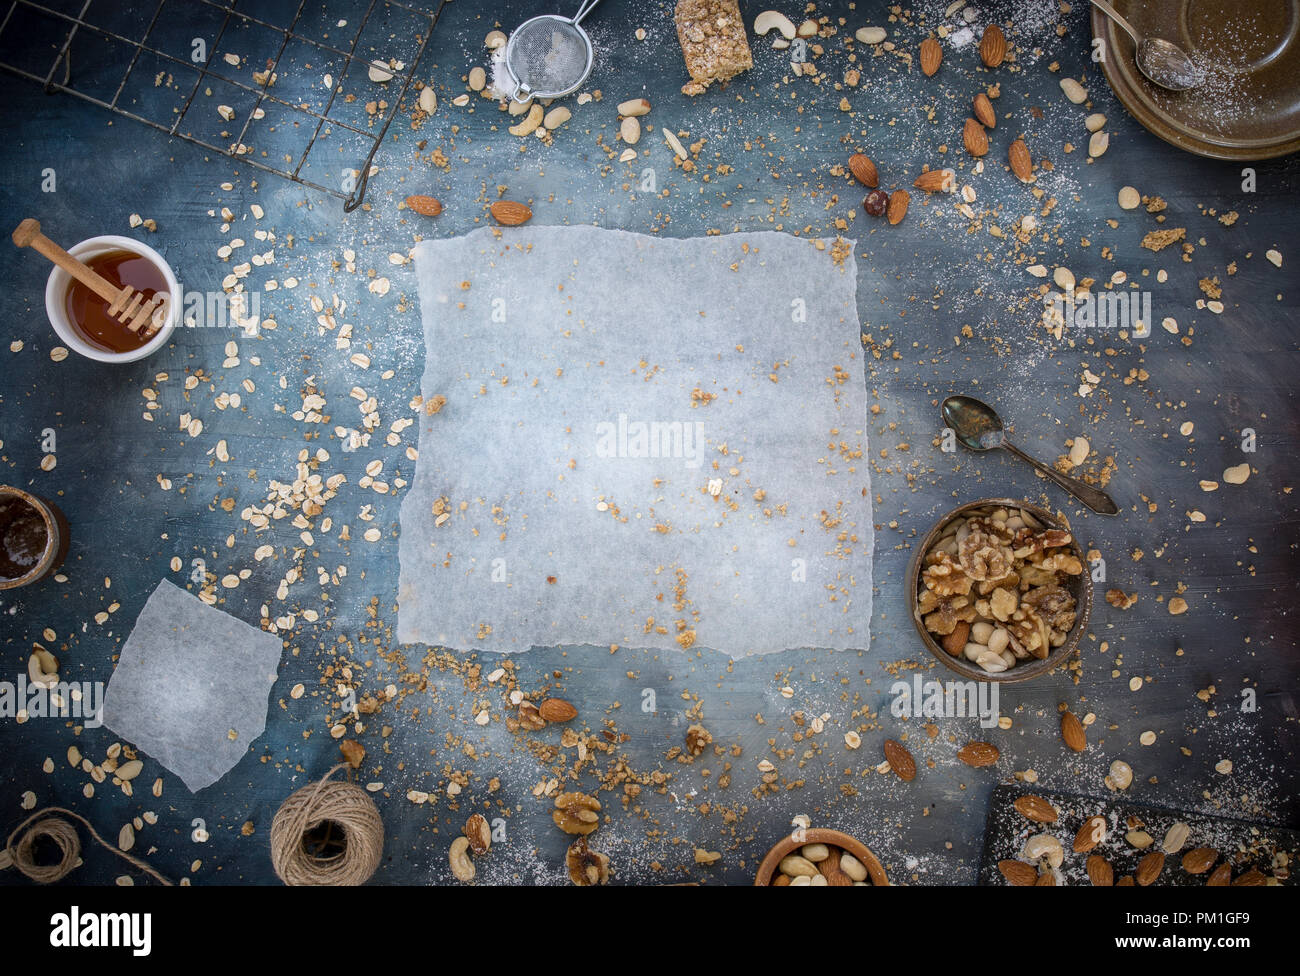 home baked caramel slices baking paper on a textured blue background with nuts seeds and grains, a flatlay overhead image, part of a series - Stock Image